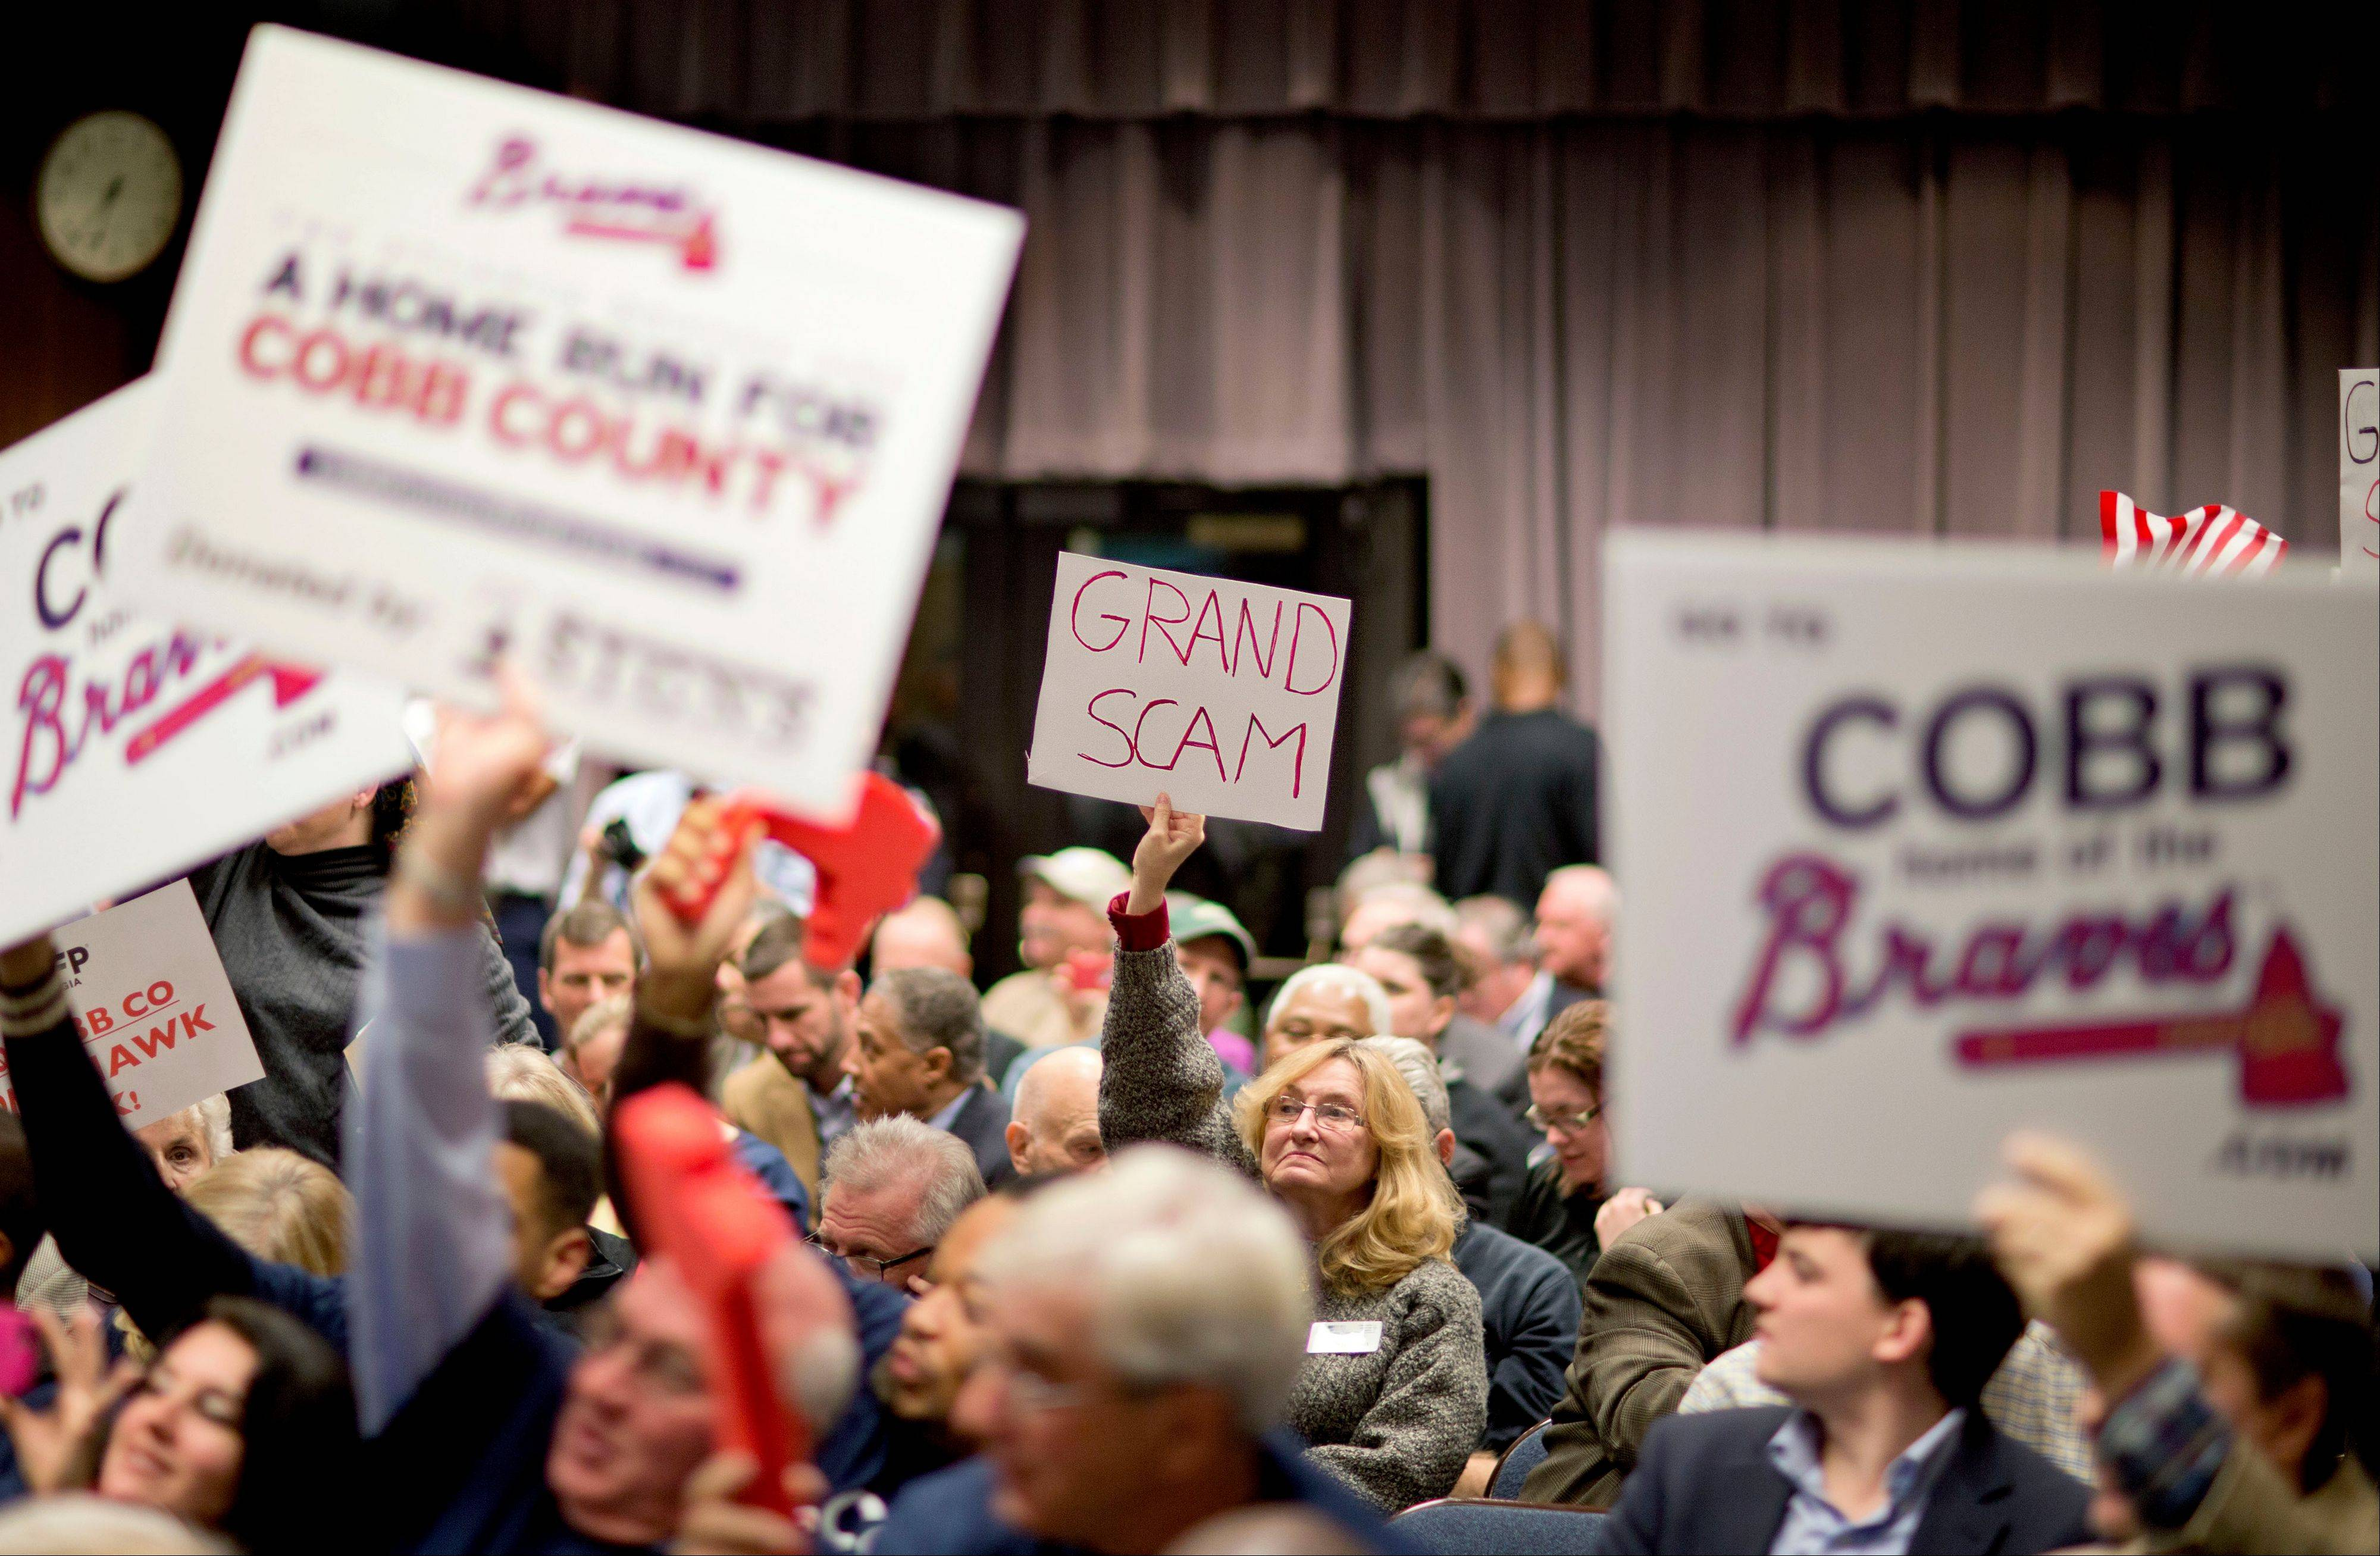 Proponents and opponents of a plan for the Atlanta Braves to build a new baseball stadium in Cobb County hold up their respective signs before the start of a Cobb County commission hearing on the subject, in Marietta, Ga., Nov. 26.